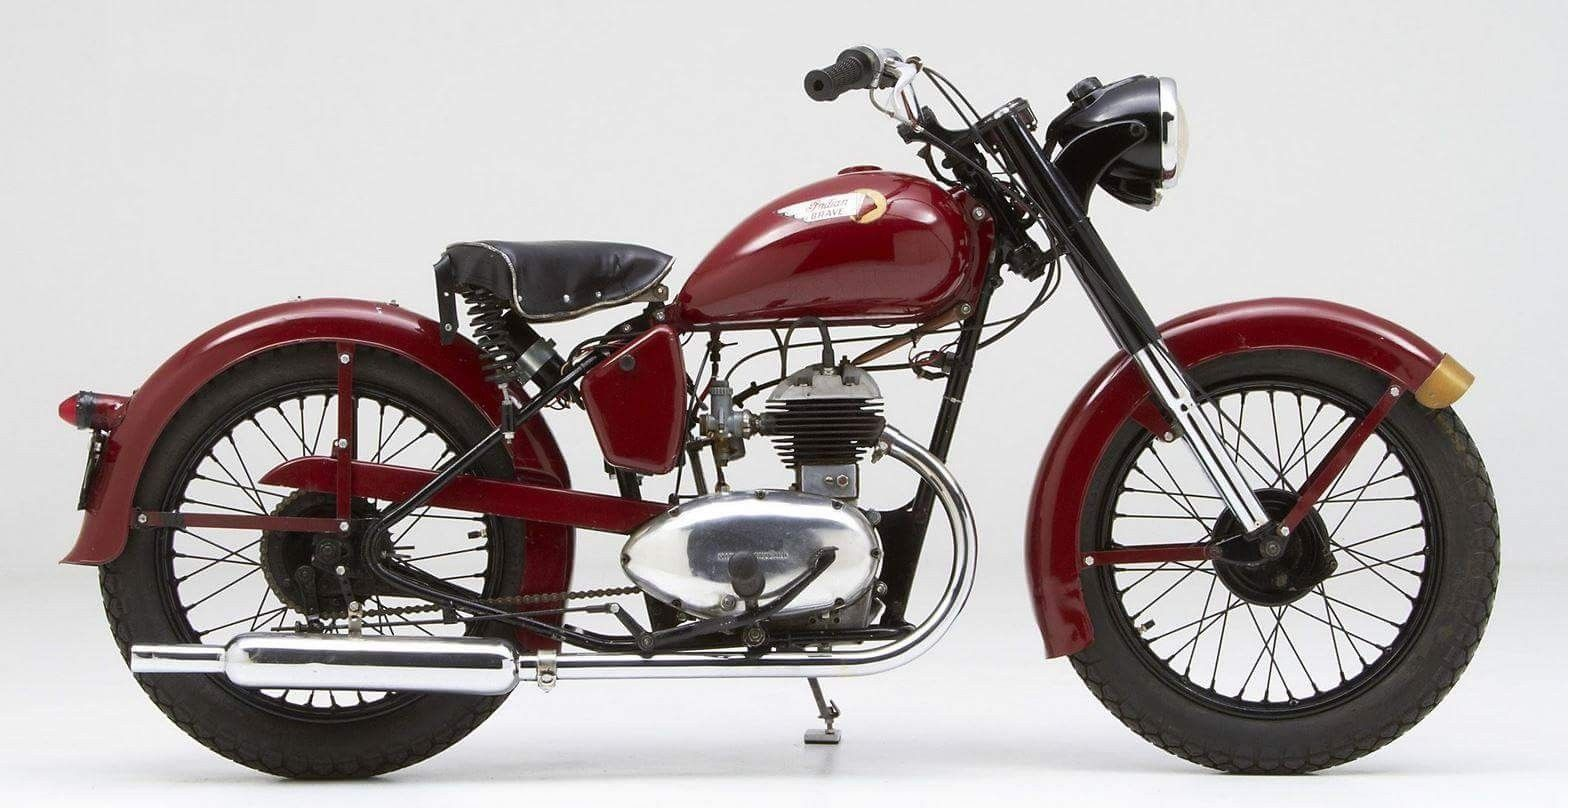 1953 Indian Brave Classic Motorcycle Community Veiculos